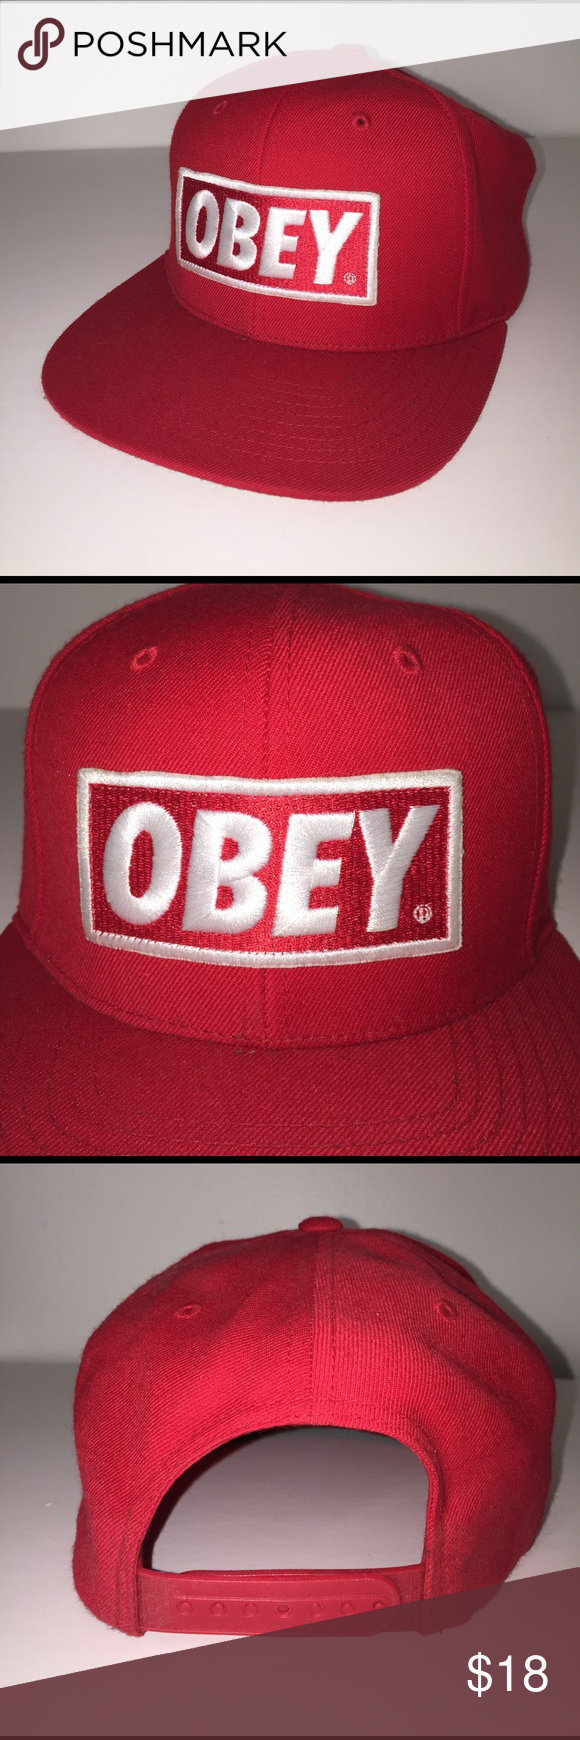 Obey Red Snapback Hat Snapback Hats Urban Outfitters Accessories Hats